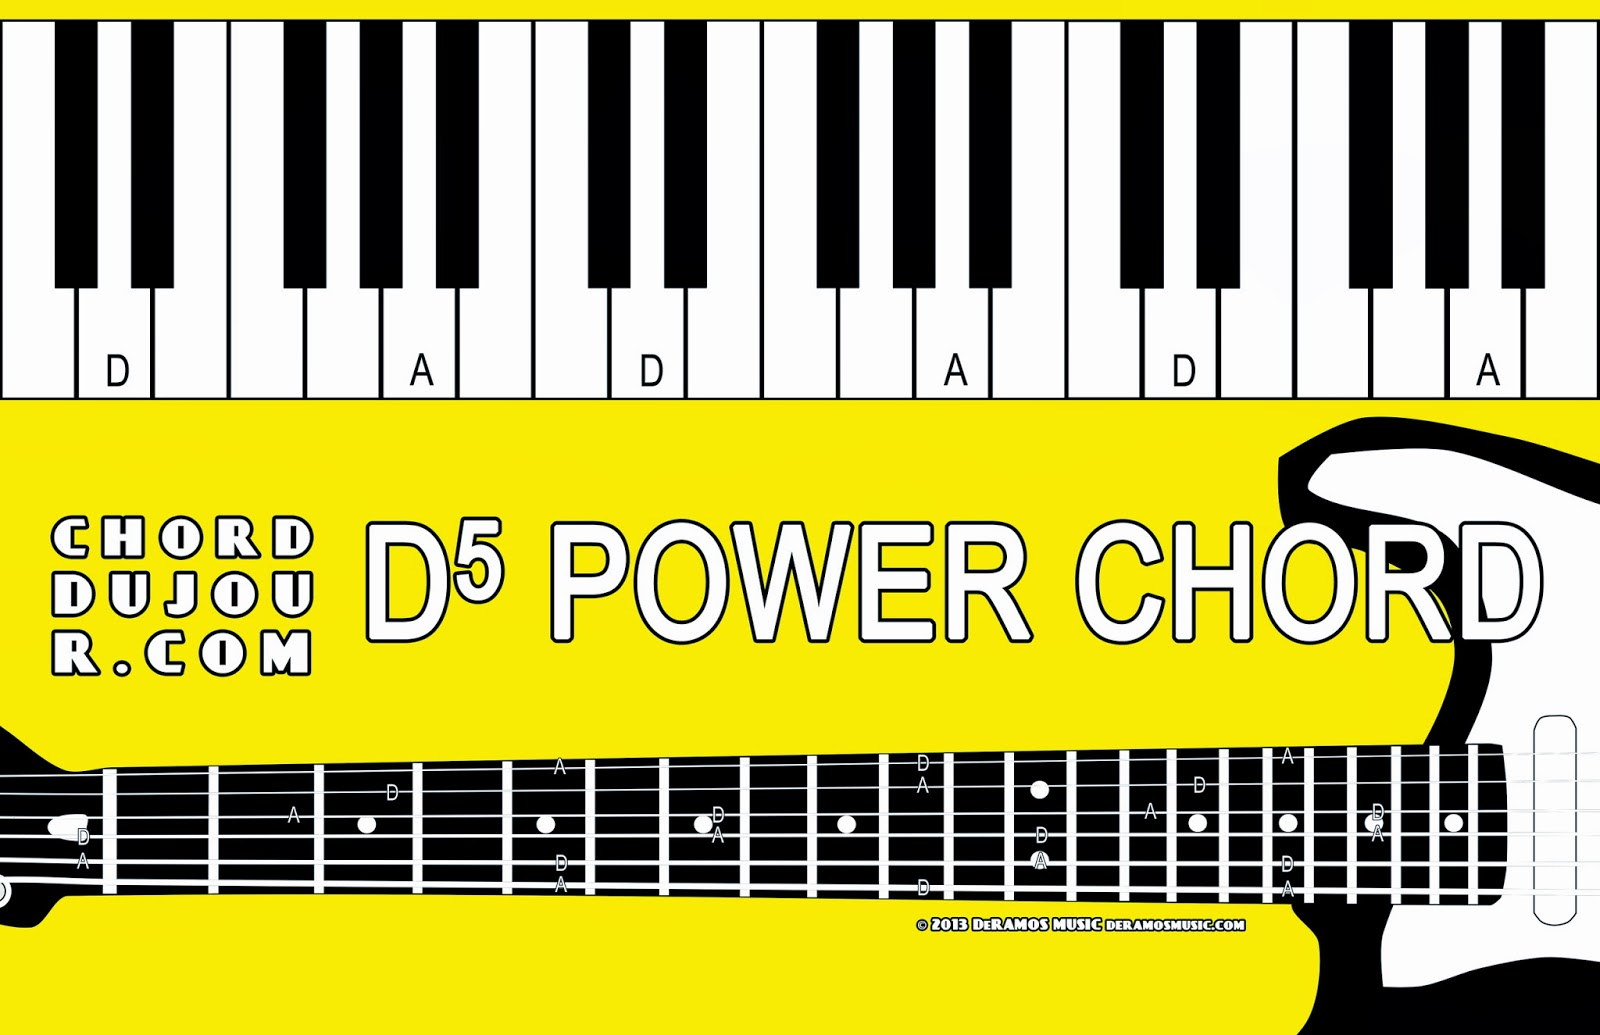 Chord du jour dictionary d5 power chord dictionary d5 power chord hexwebz Gallery